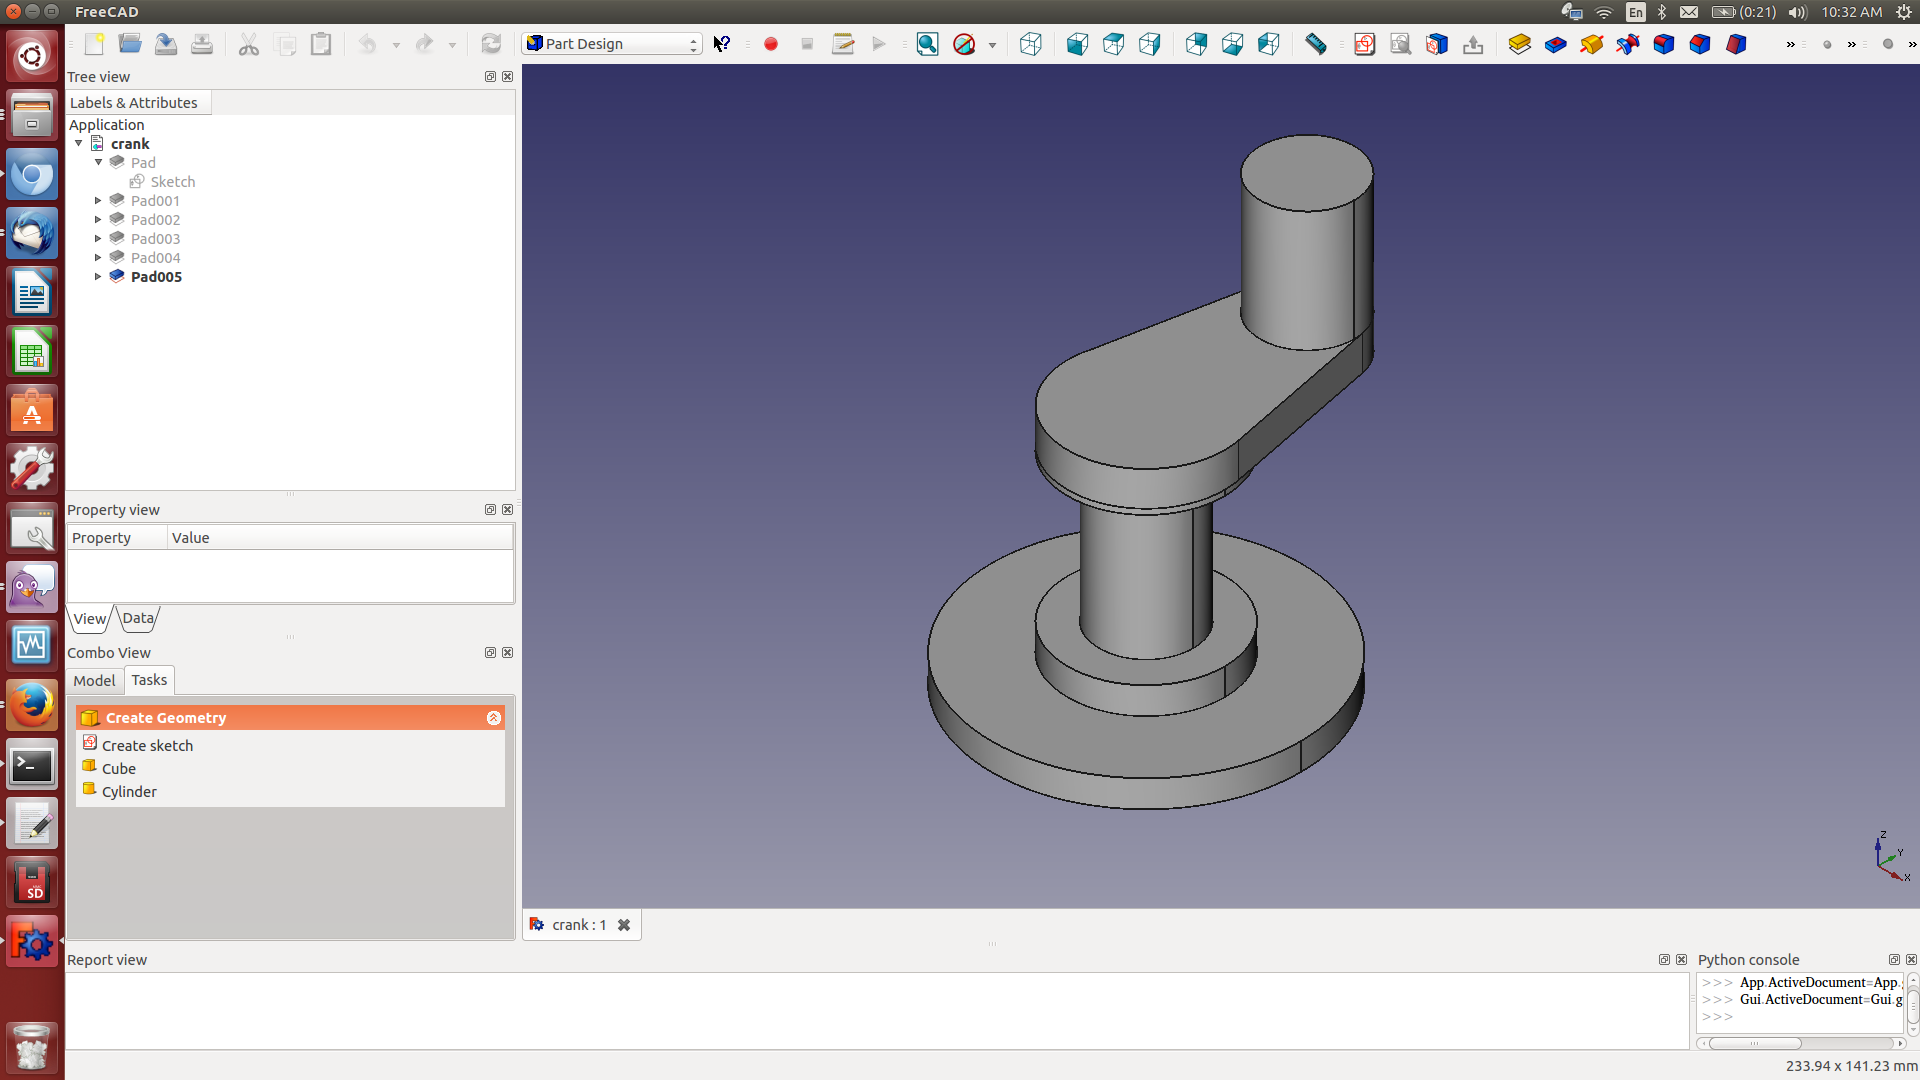 O t free beginner 3d cad software suggestions requested Free 3d cad software